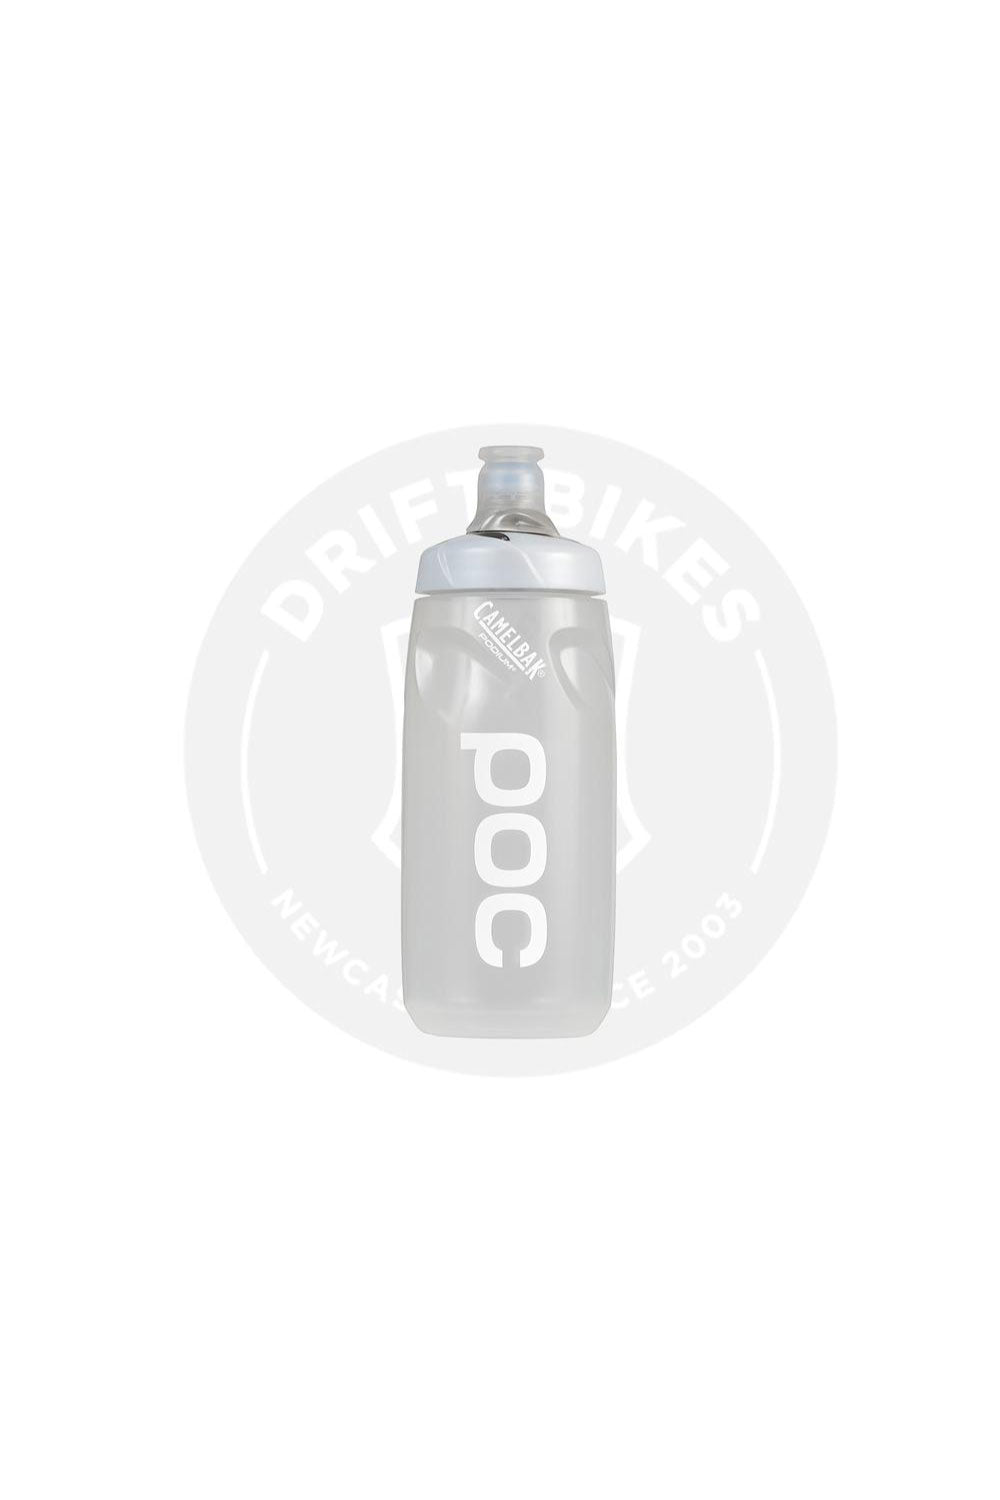 POC Race Drink Bottle Hydrogen White